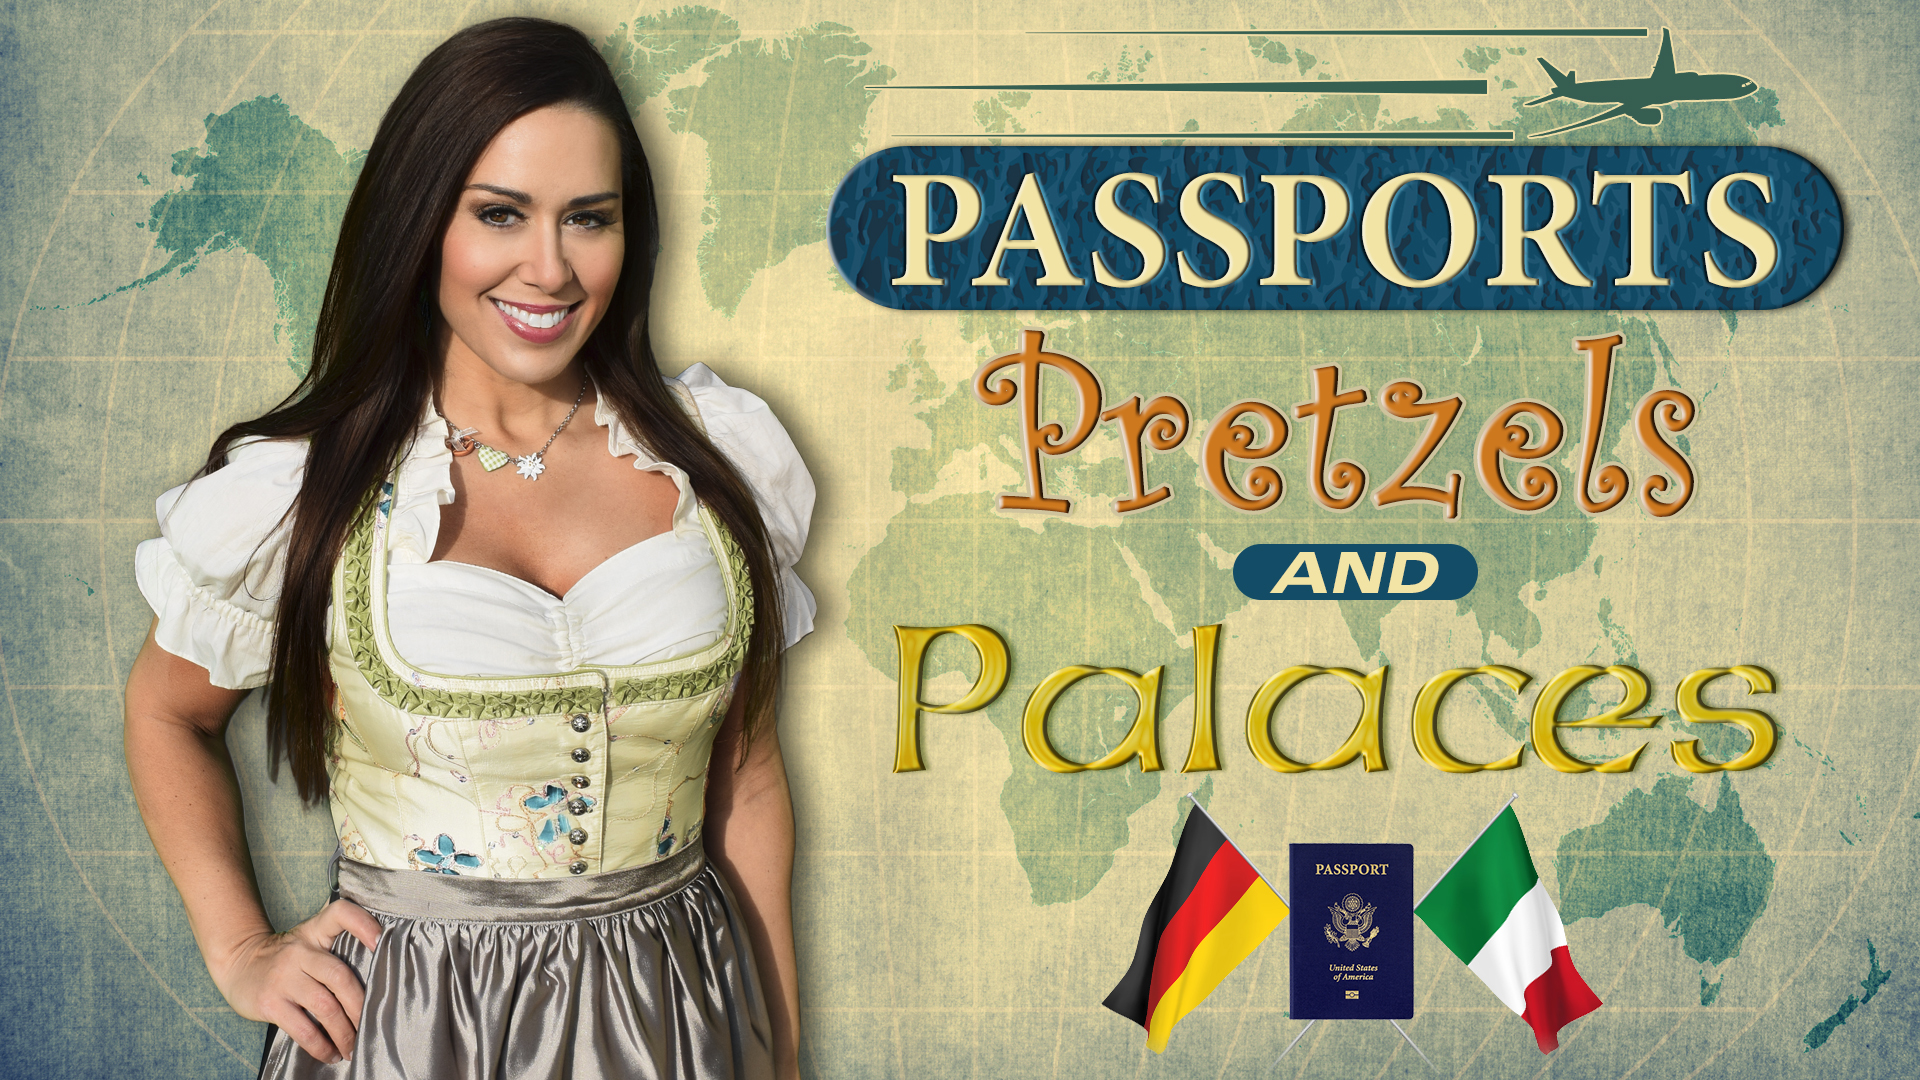 passports pretzels and palaces 1920x1080 2016